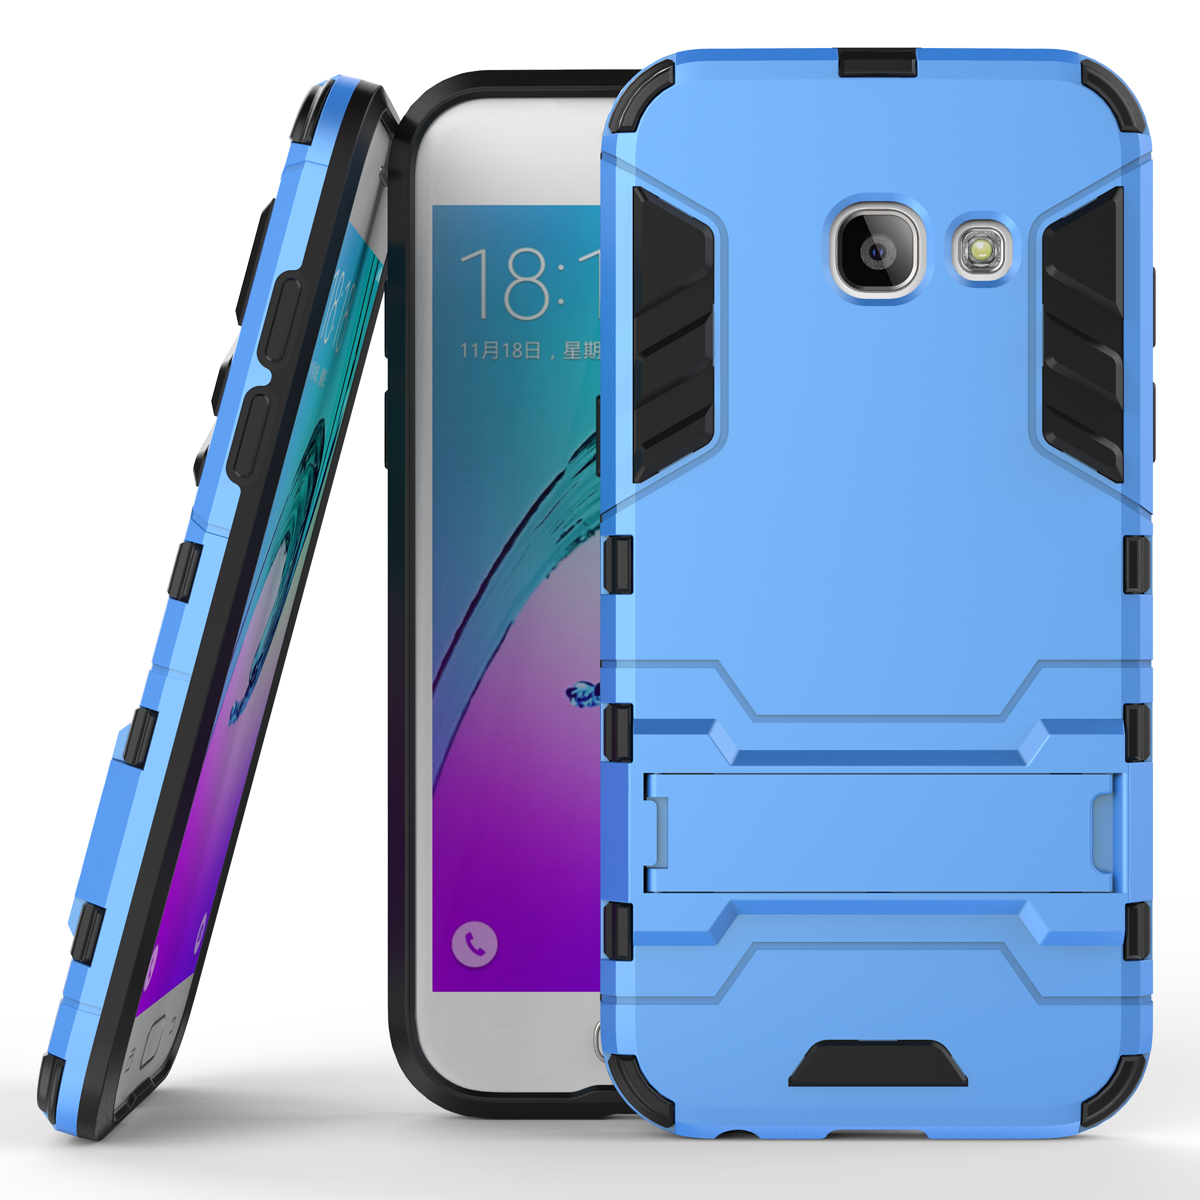 Or kickstand protective cover case for samsung galaxy j3 2017 j3 emerge blue p201701181411159520